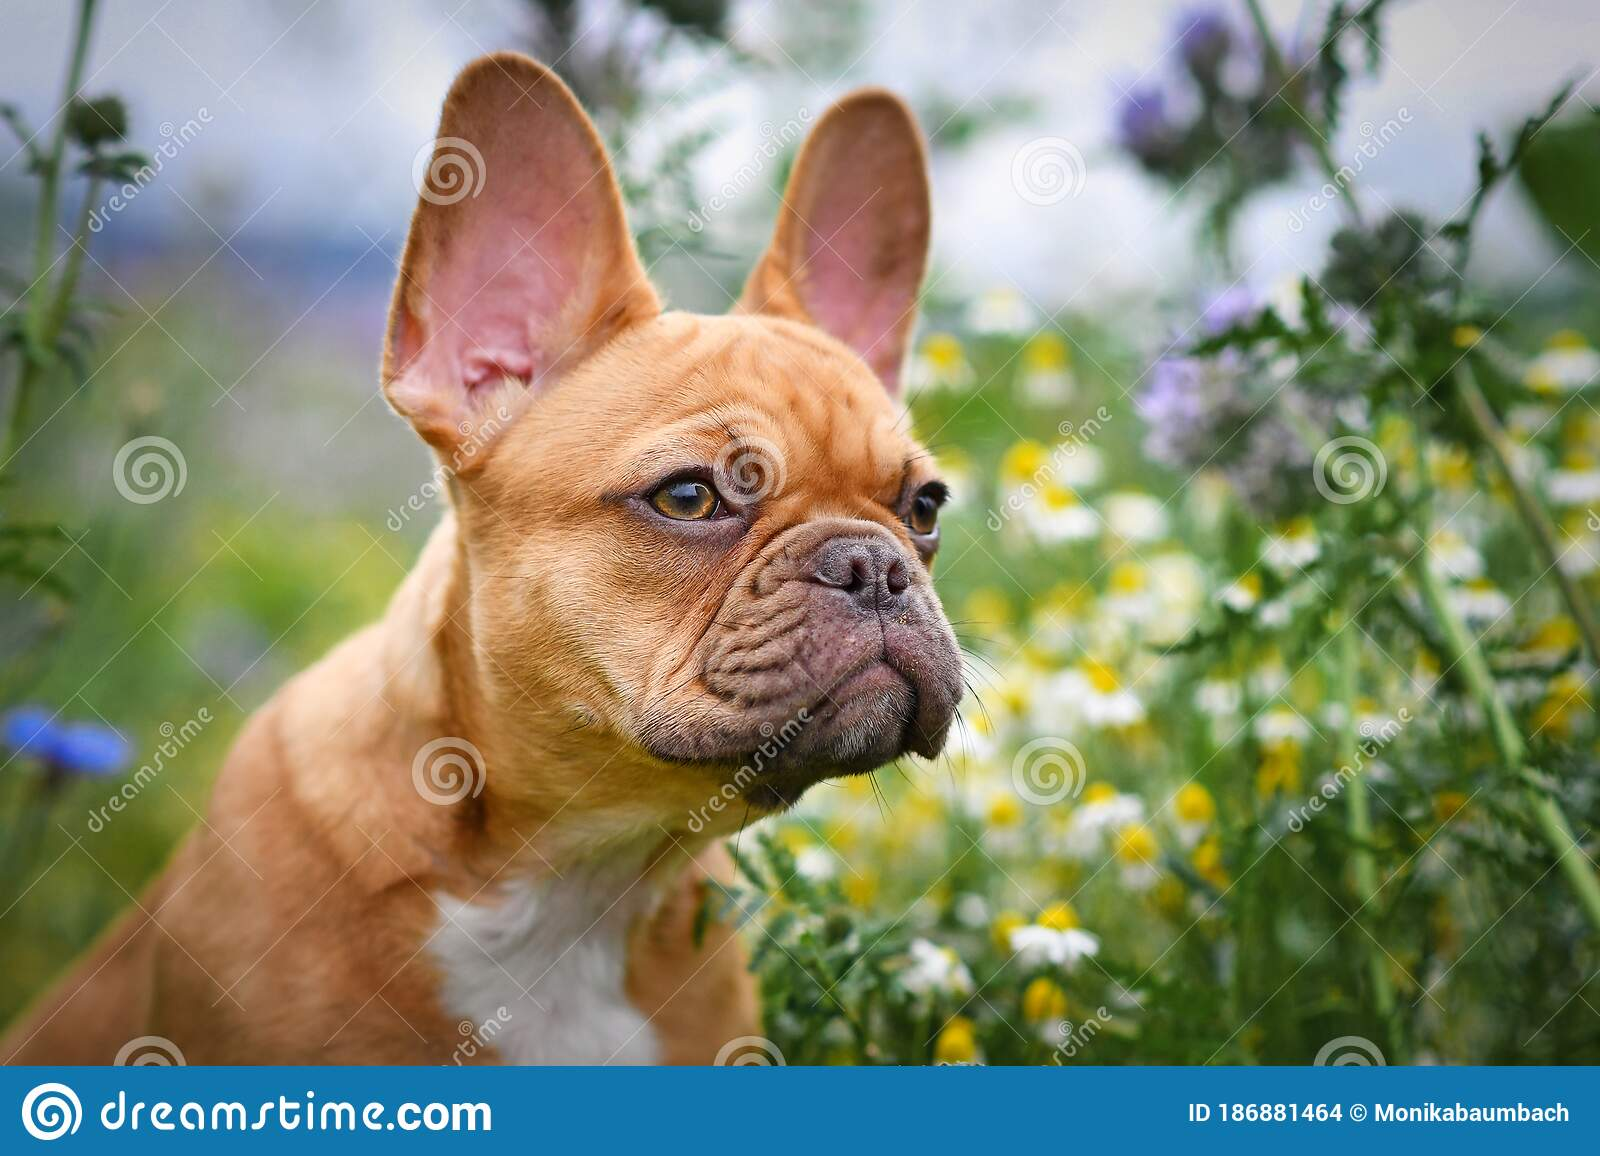 Portrait Of Beautiful Red Fawn French Bulldog Puppy With 16 Weeks Between Flower Meadow Durings Stock Photo Image Of Outdoor Breed 186881464